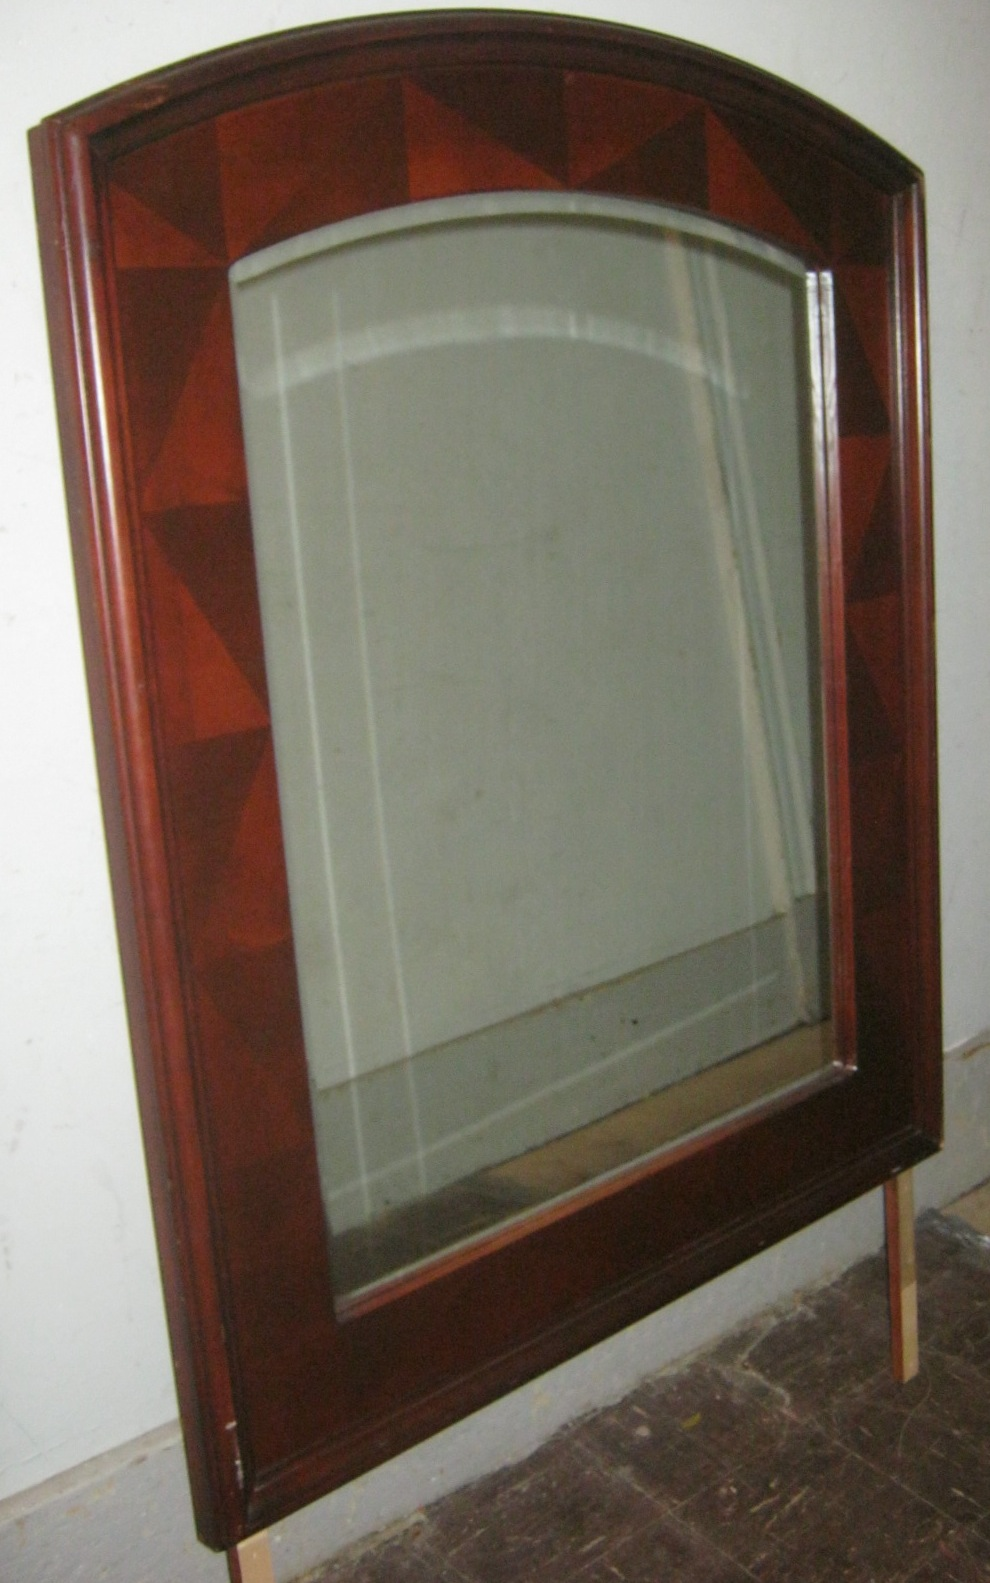 3 Piece Mahogany Bedroom By Rivers Edge  SOLD